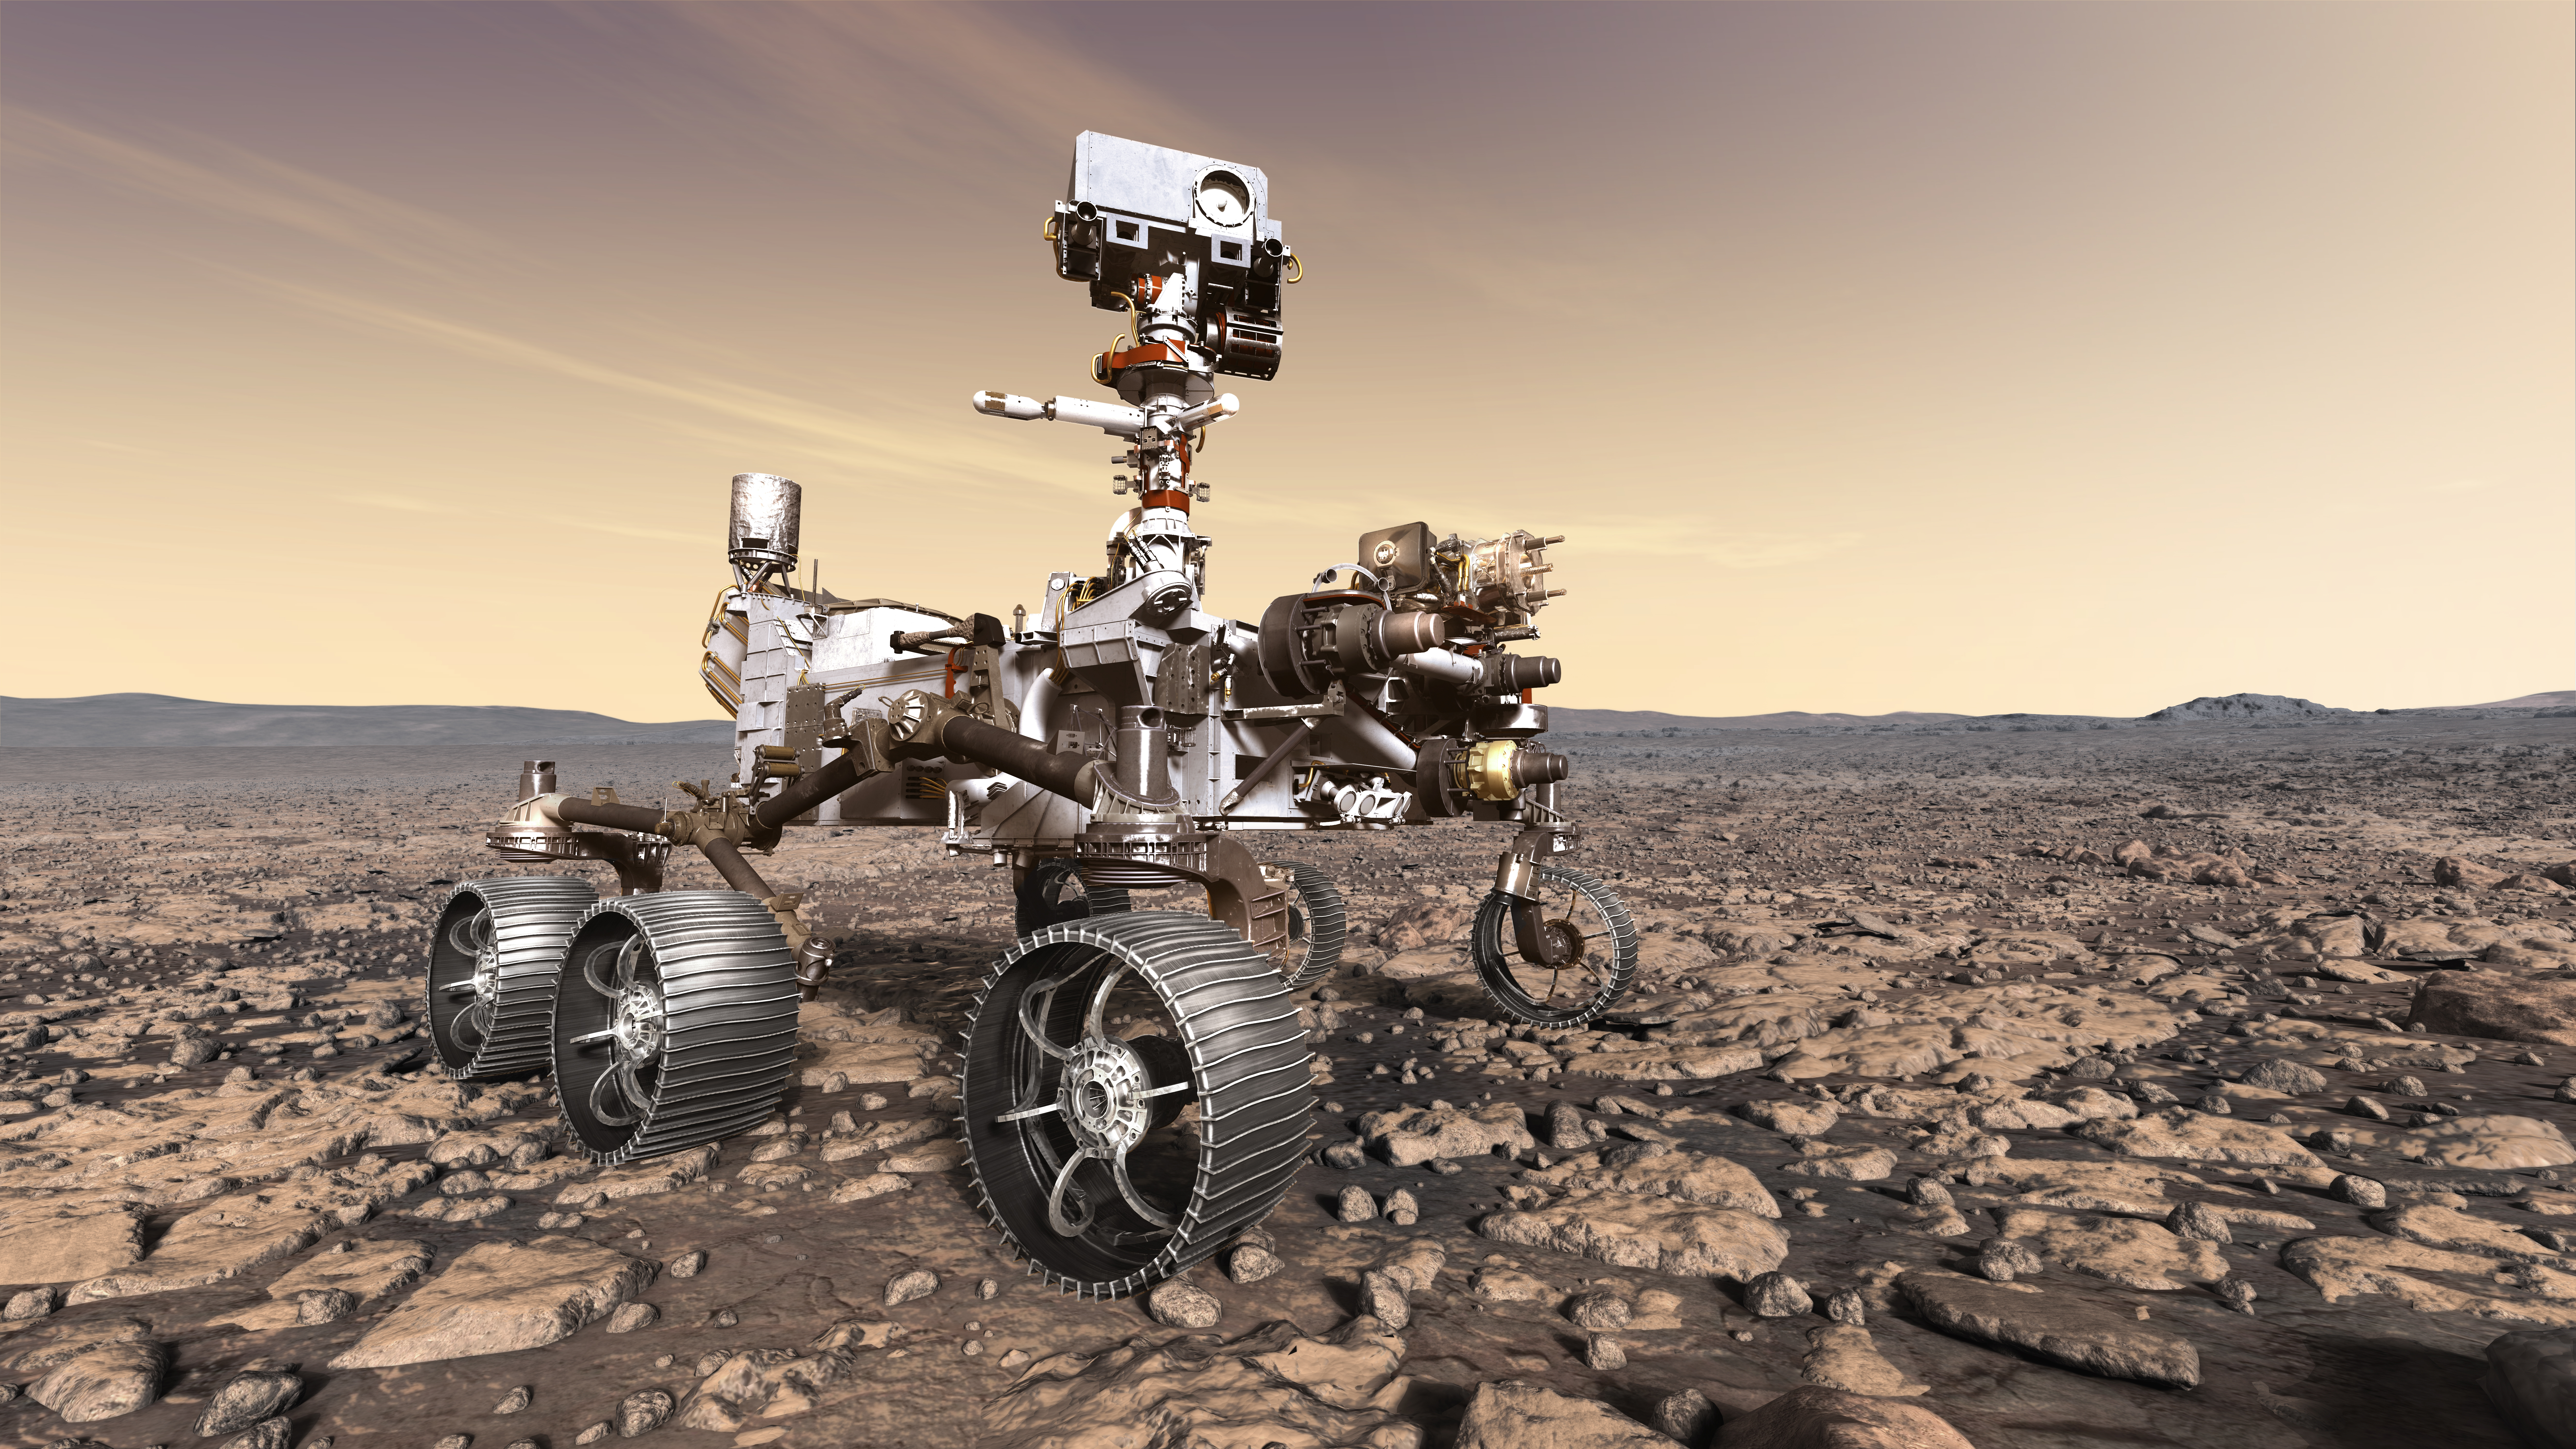 An artist's impression of the Perseverance rover landed at Jezero Crater